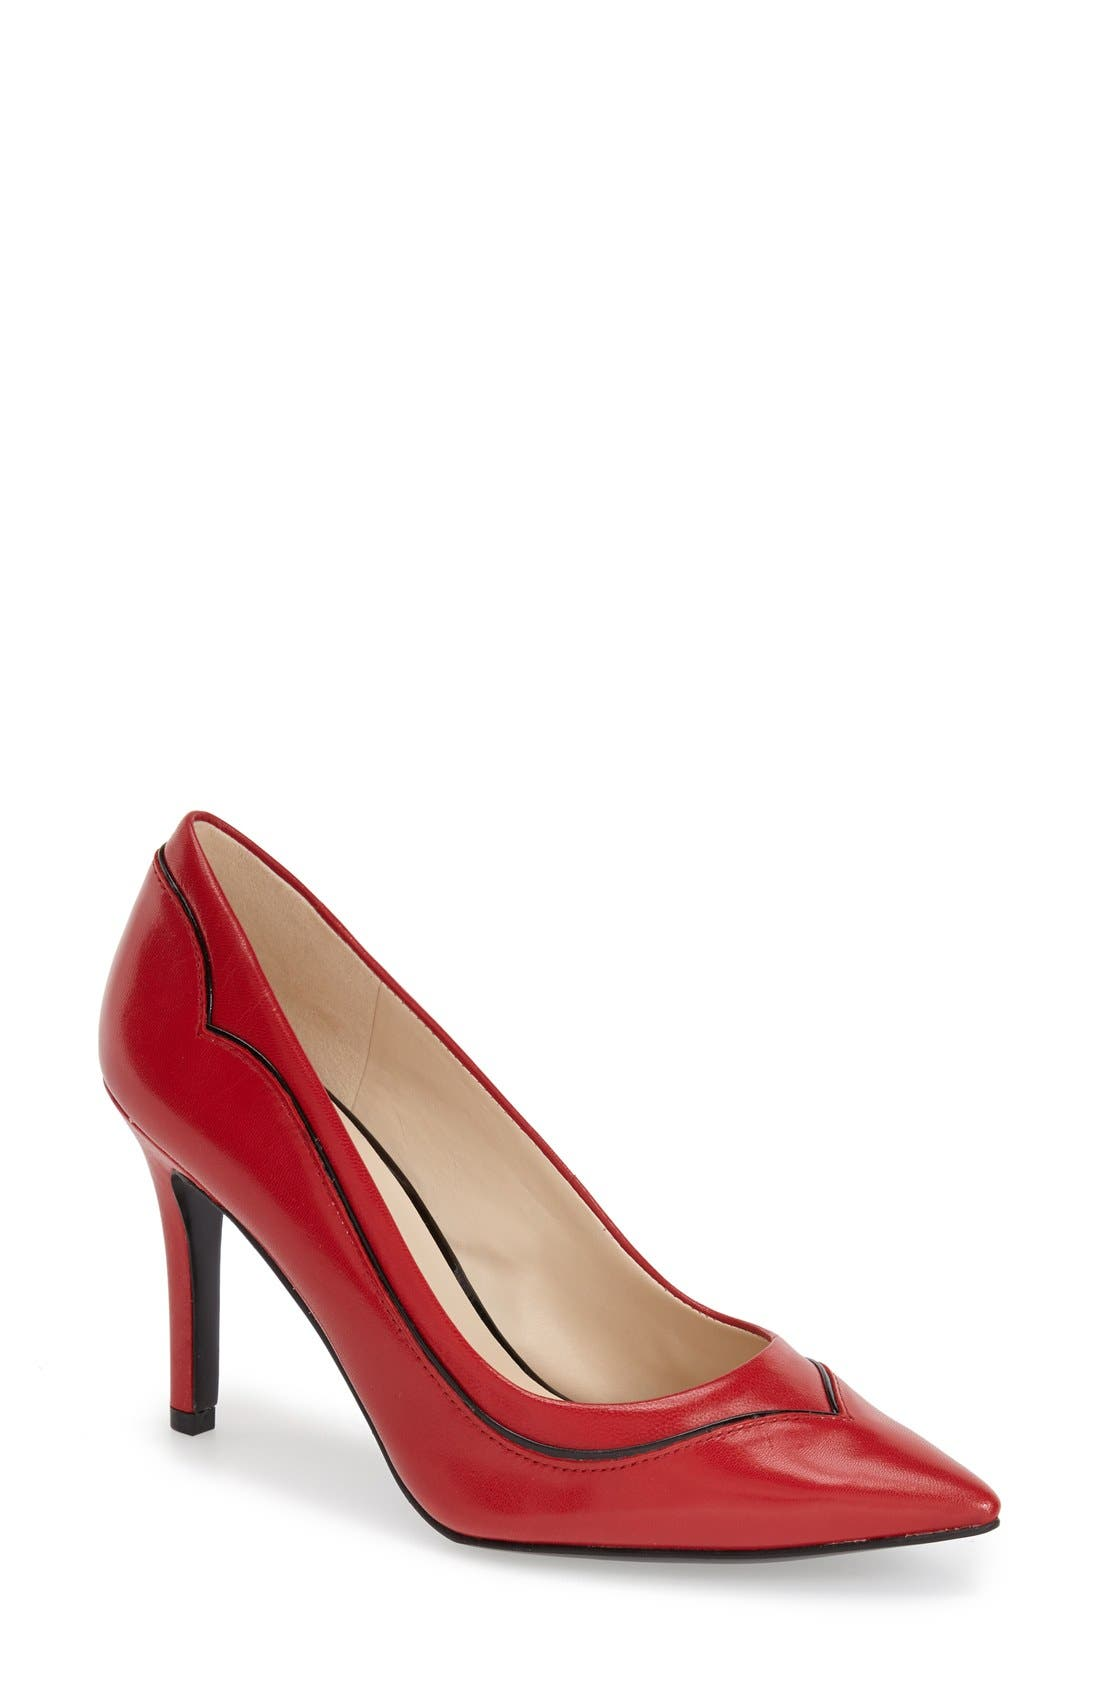 Main Image - Nine West 'Jet Plane' Pointy Toe Pump (Women)